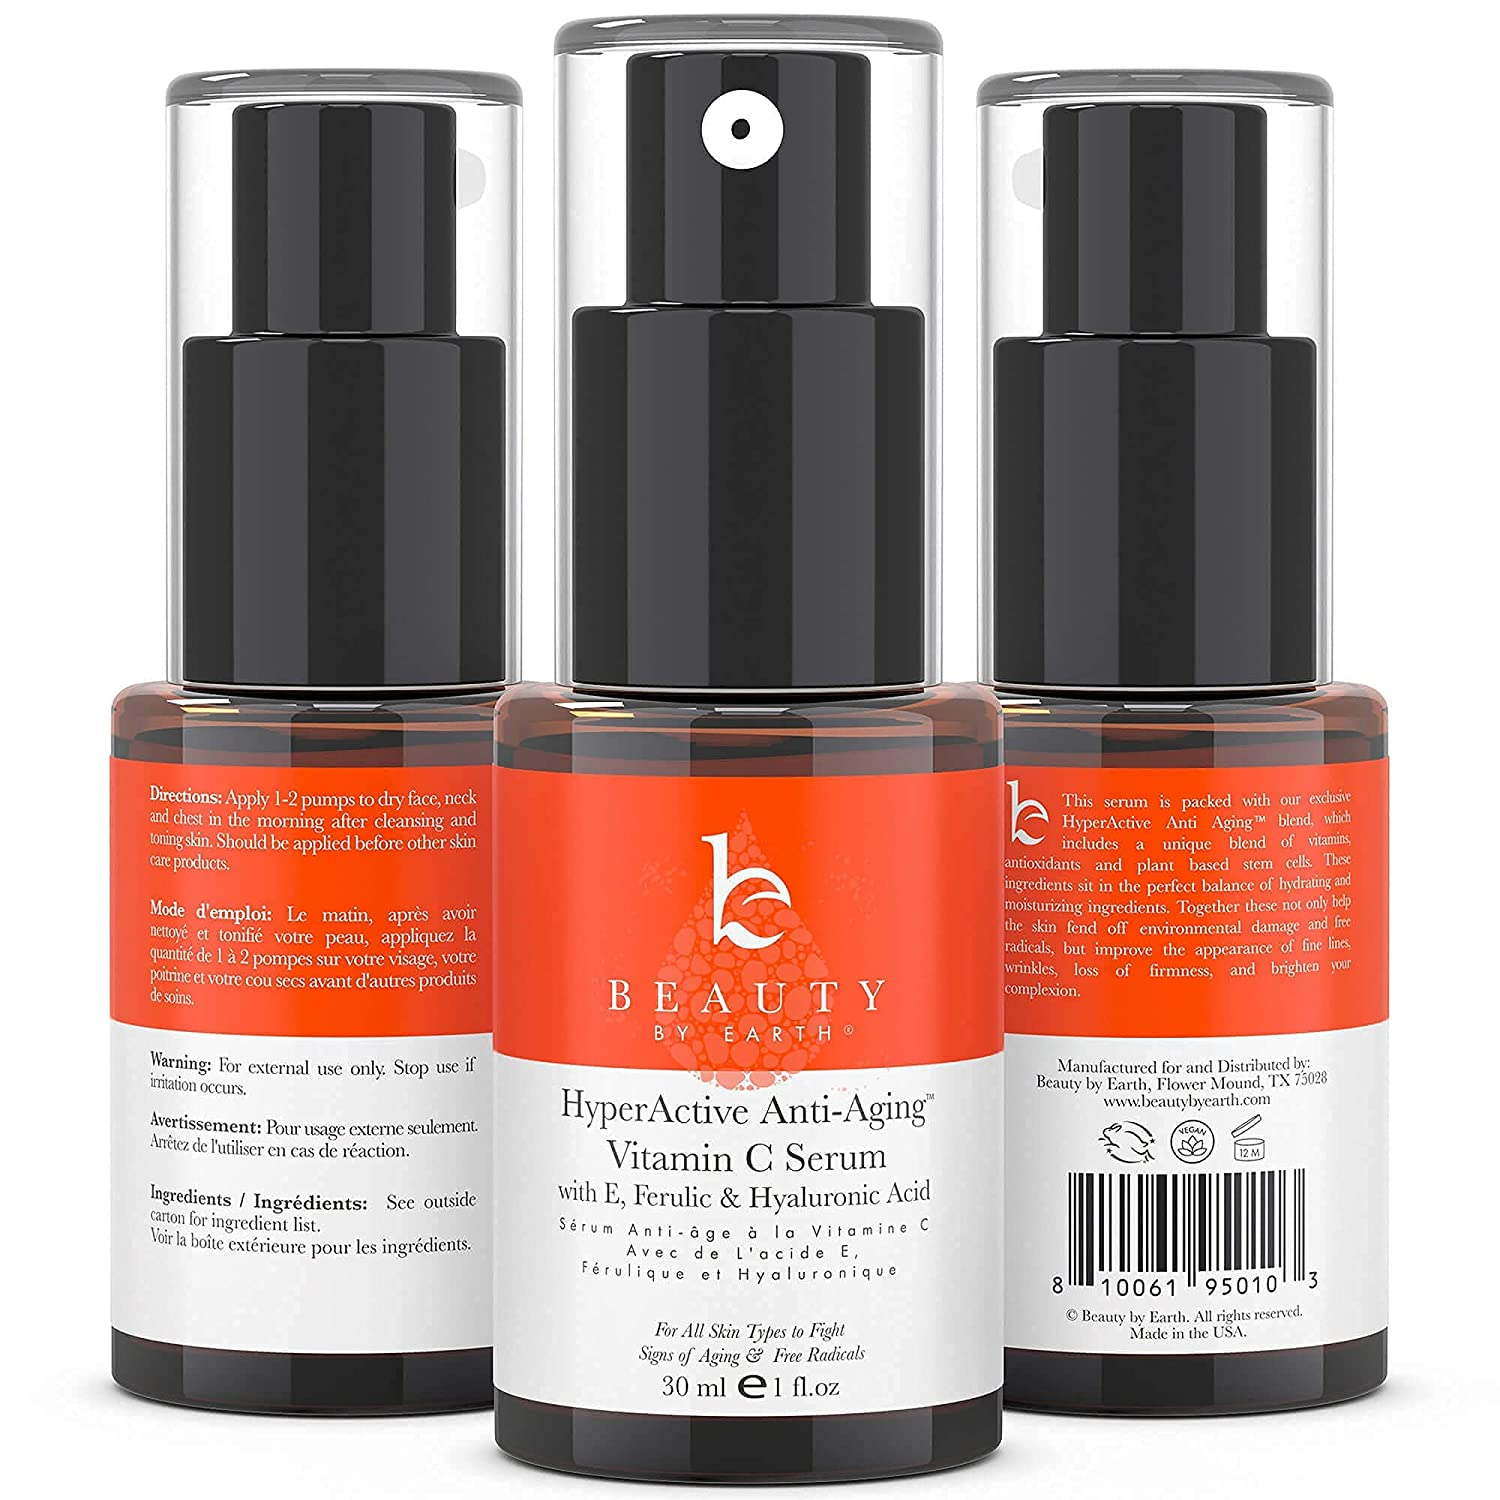 Vitamin C Serum with Hyaluronic Acid - Anti Aging Vit C Facial Serum with Vit E & Ferulic Acid to Brighten Skin, Reduce signs of Aging, Photodamage and Appearance of Fine Lines & Wrinkles (1 pk)